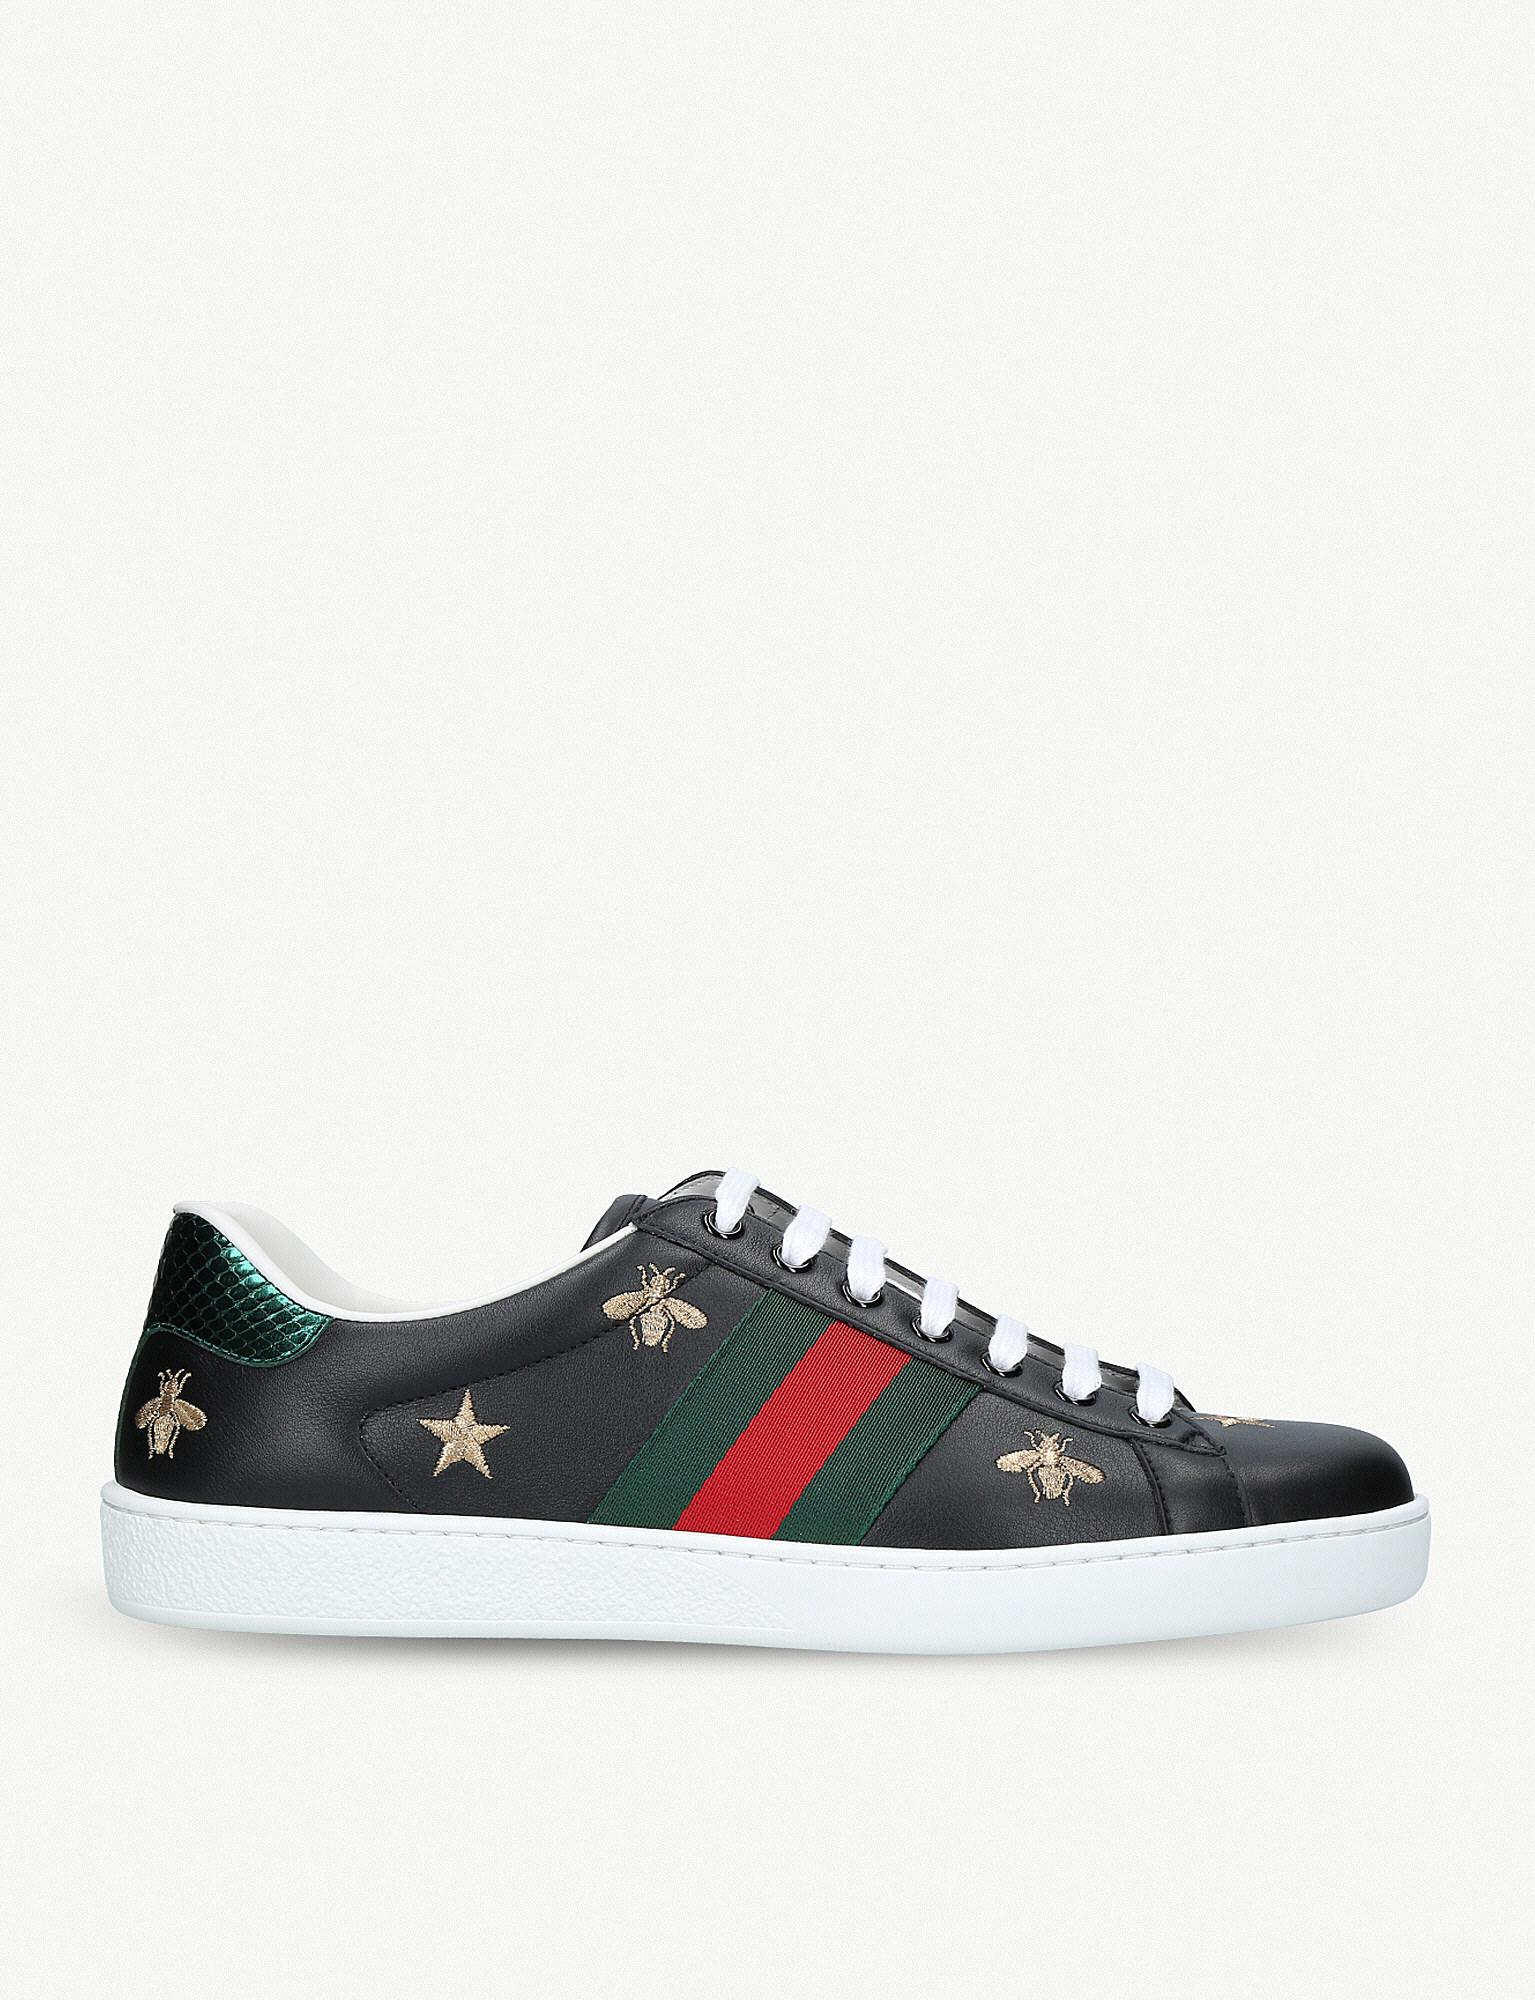 ab9c3b8d688 Lyst - Gucci New Ace Bee-embroidered Leather Trainers in Black for Men